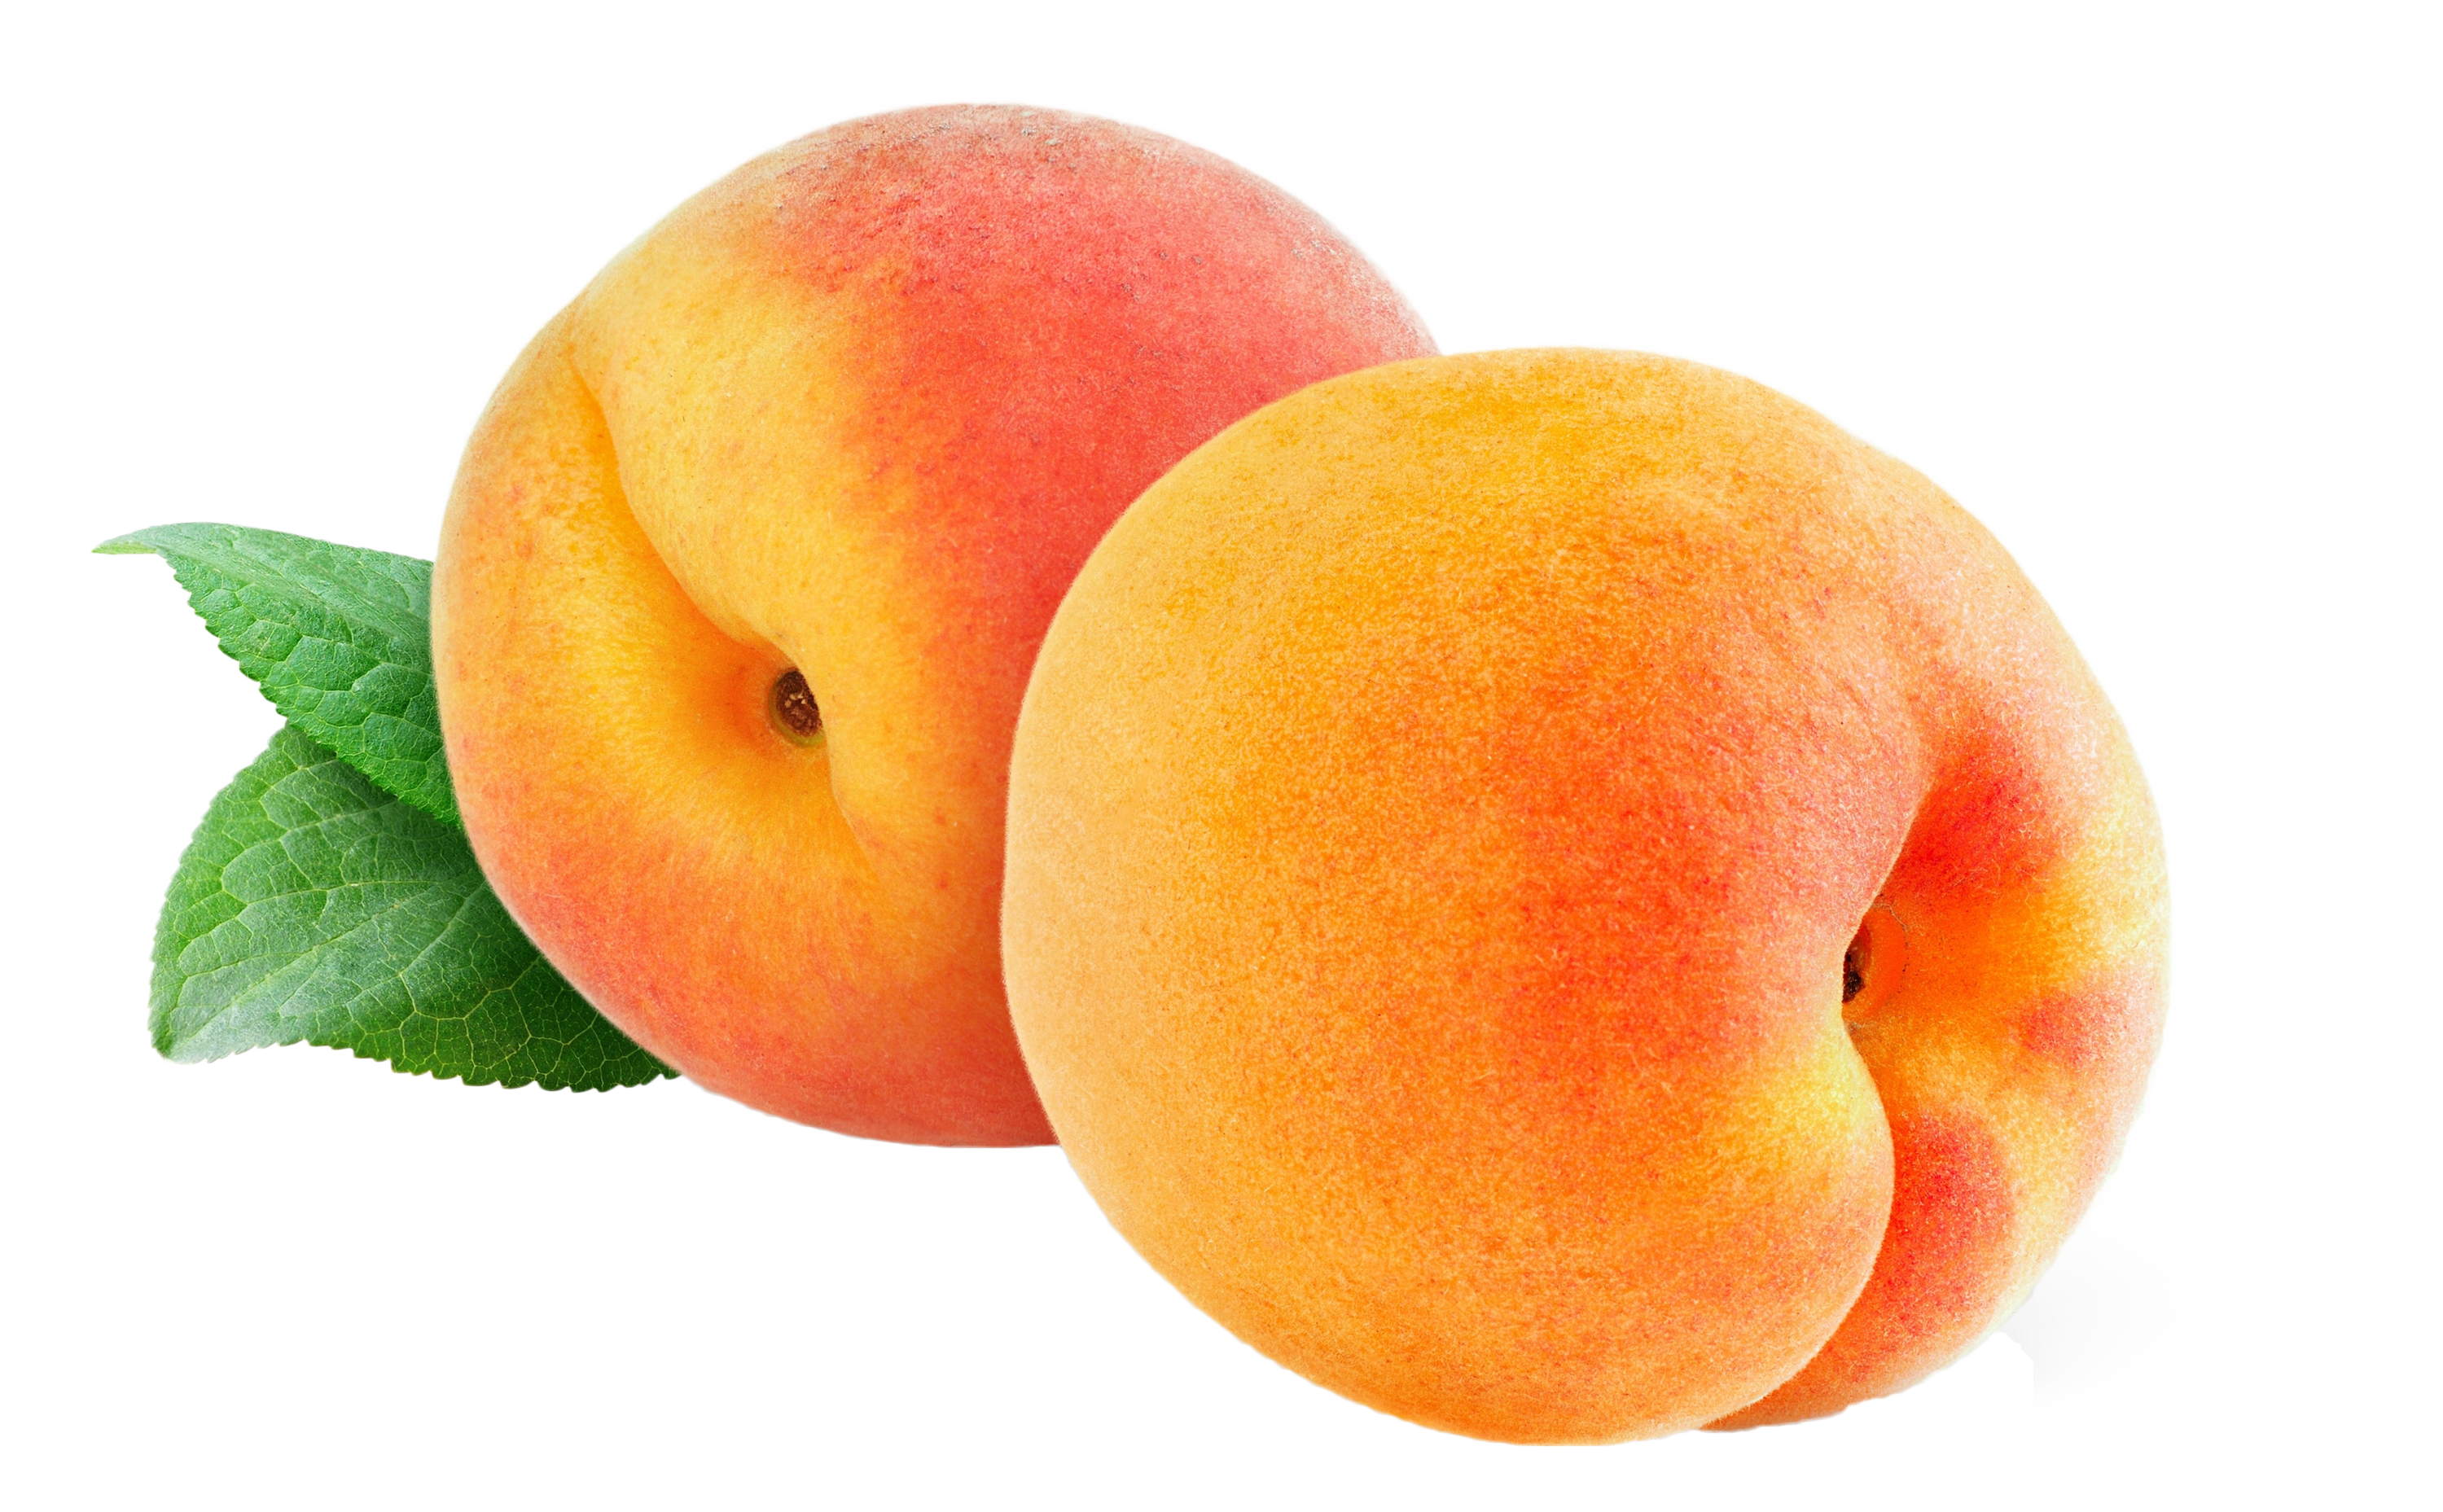 Peach clipart transparent background peach. Png image purepng free